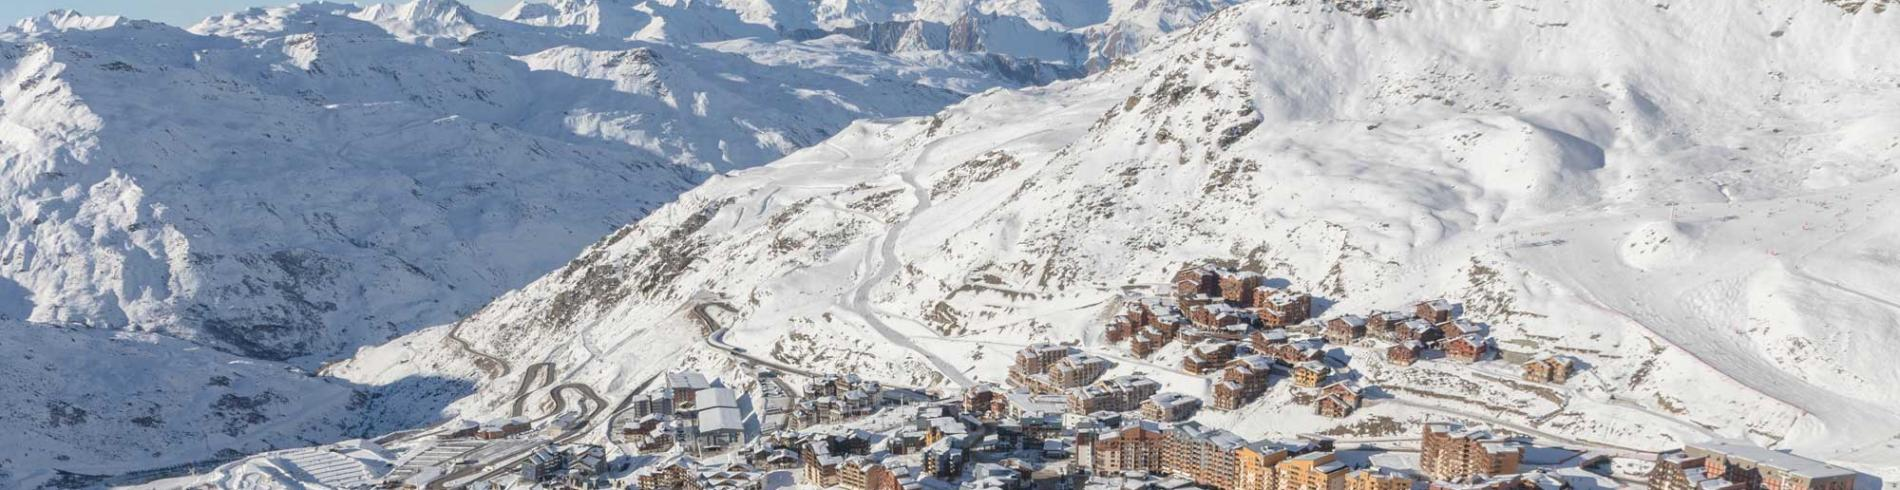 Val Thorens from the air